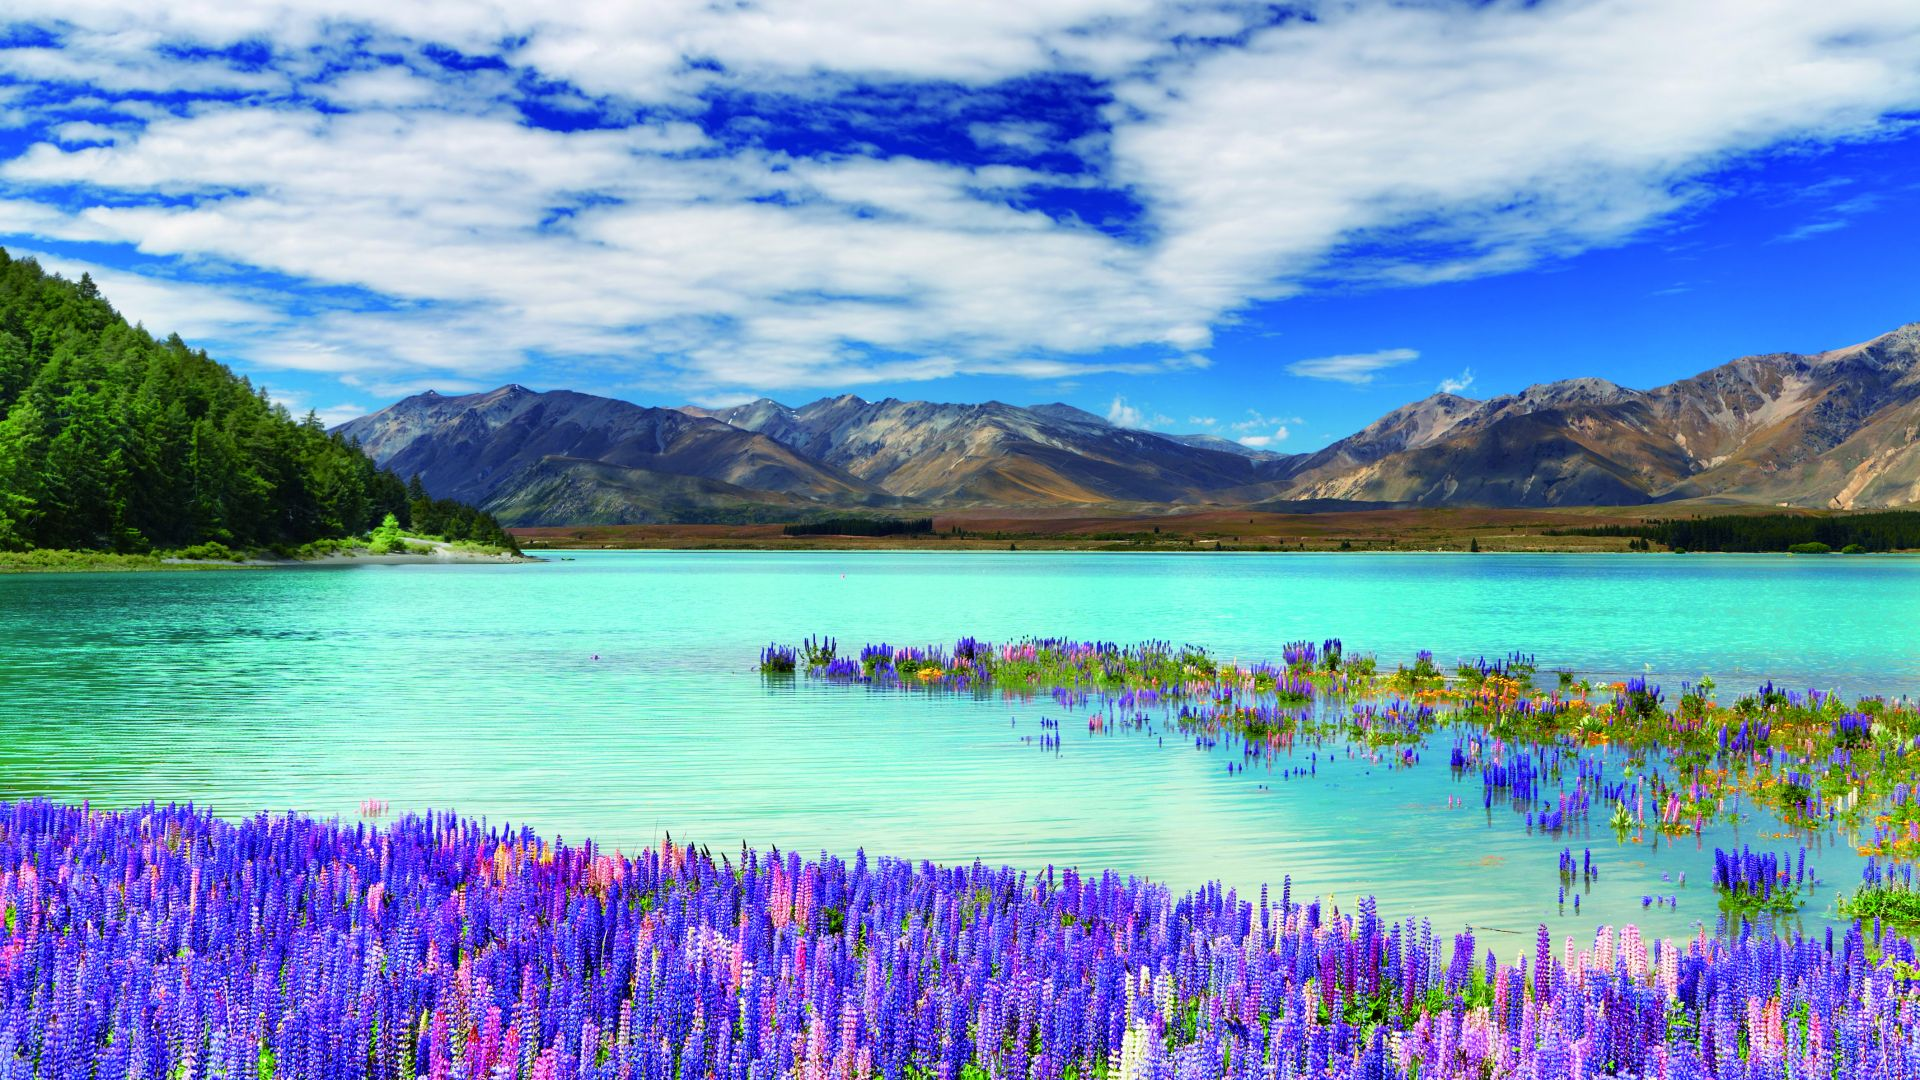 Wallpaper New Zealand River Mountains Flowers Clouds